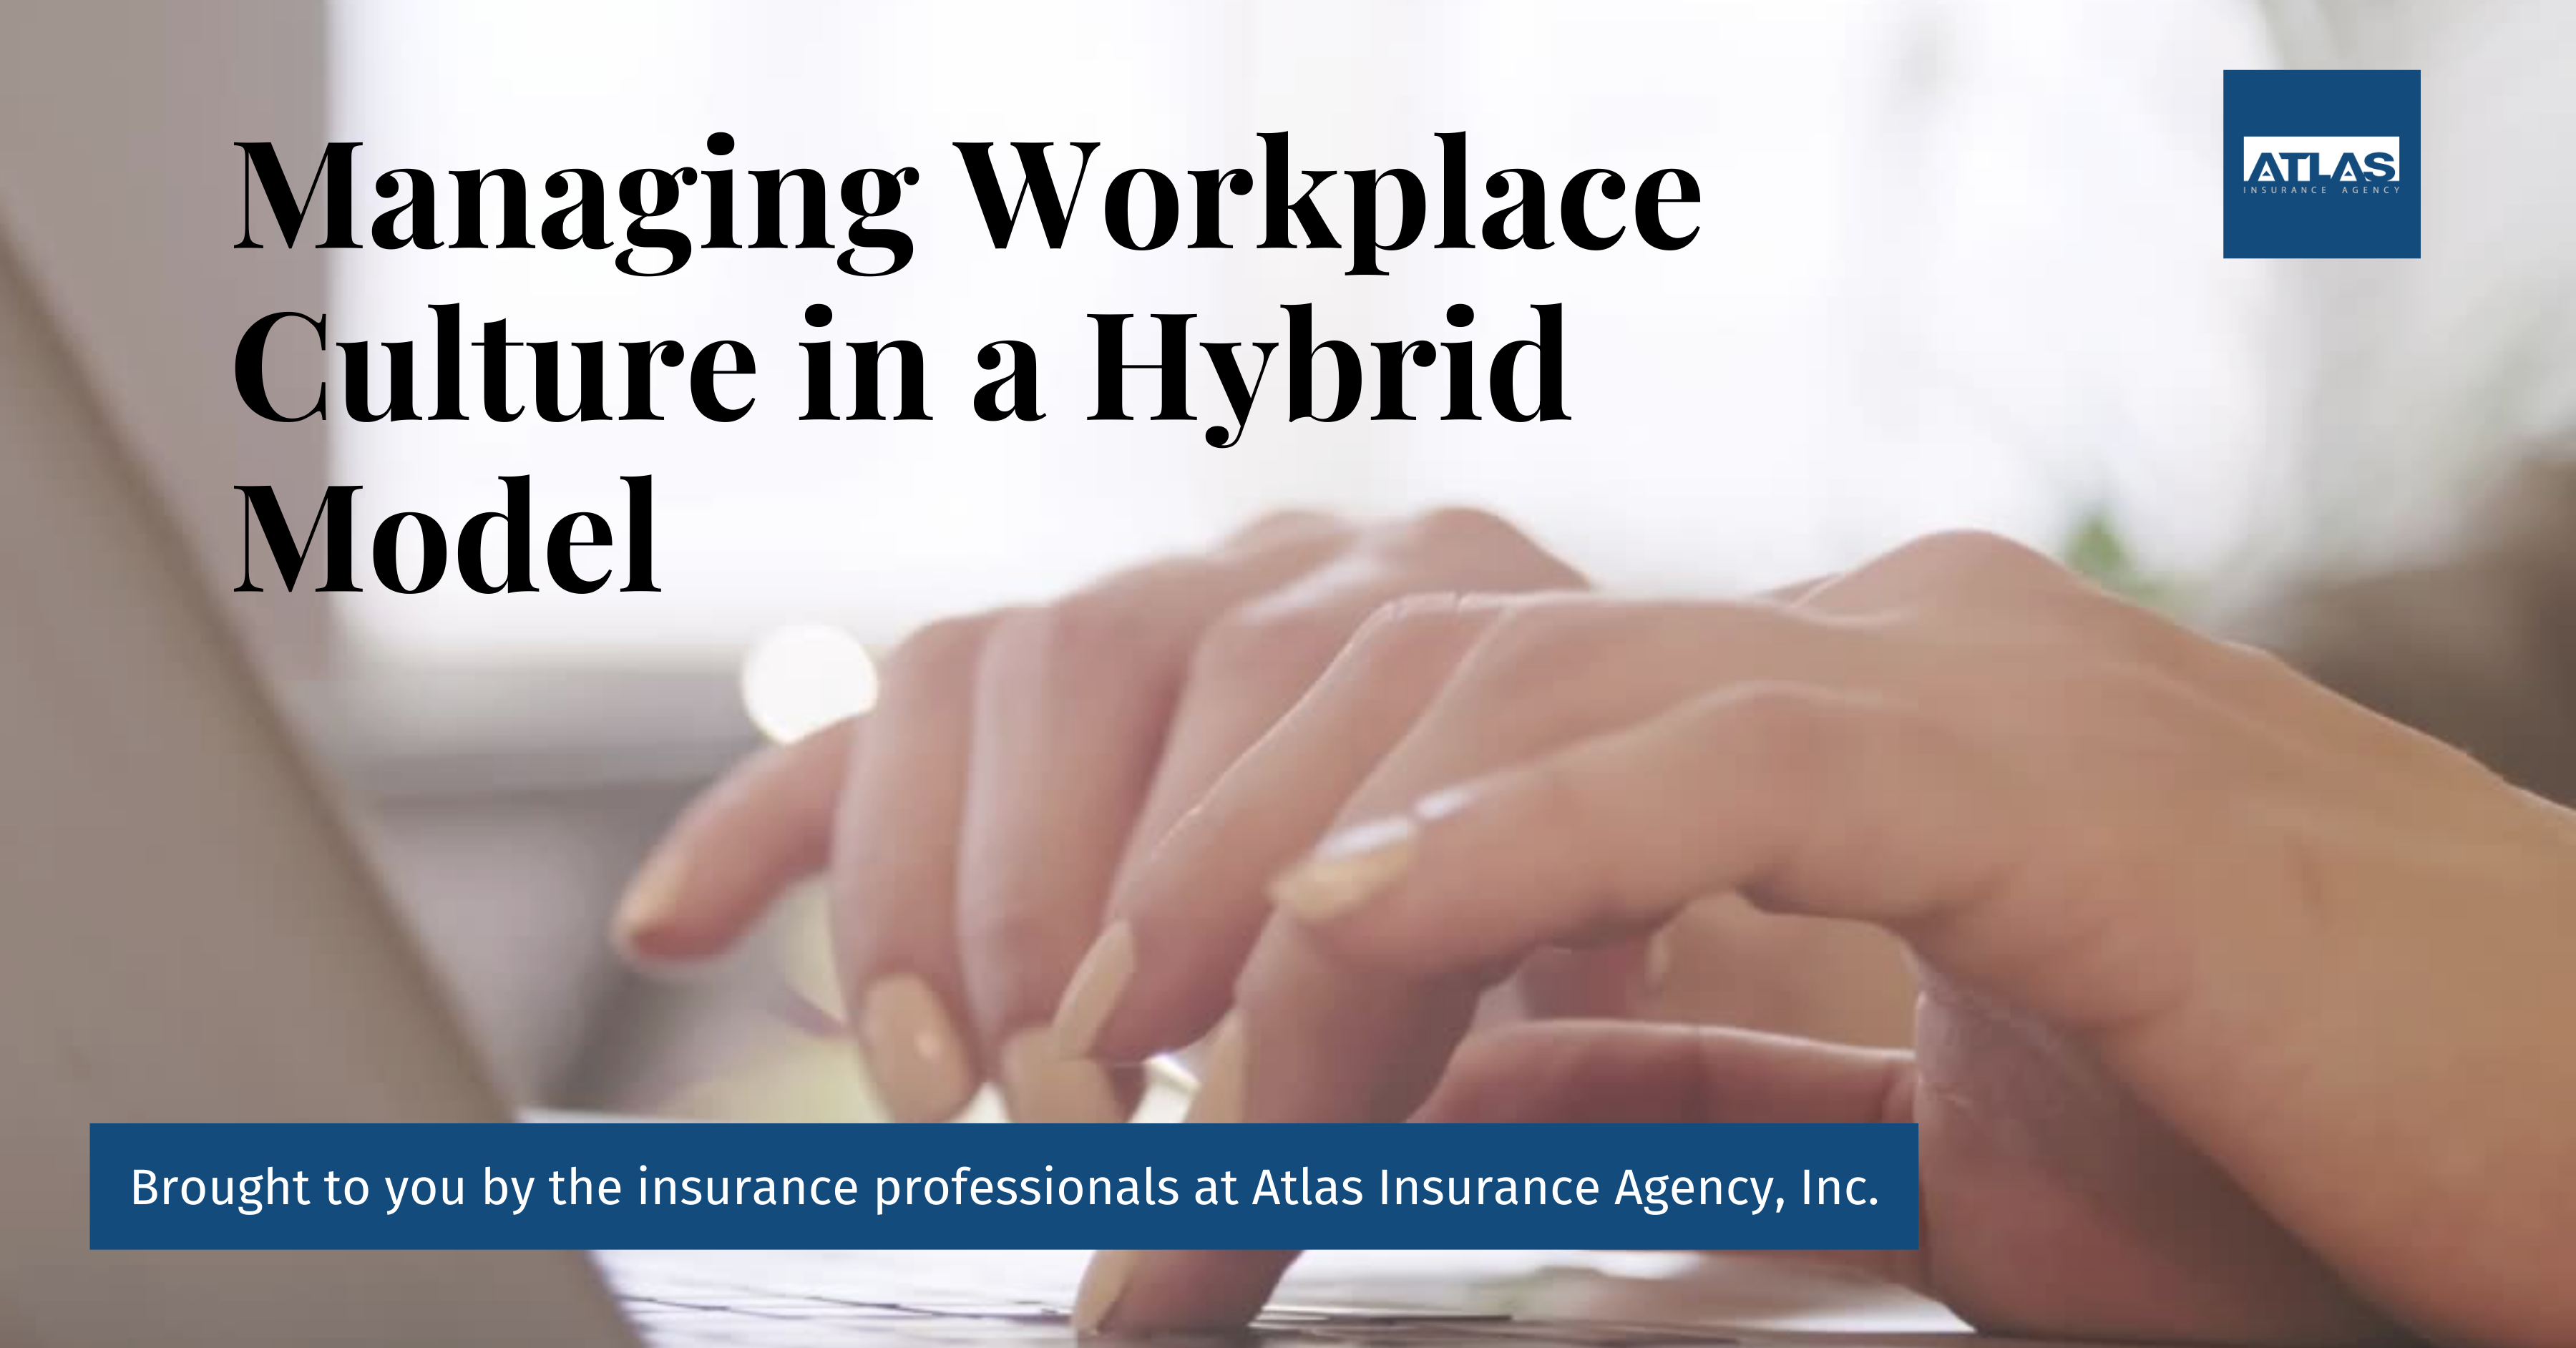 Managing Workplace Culture in a Hybrid Model